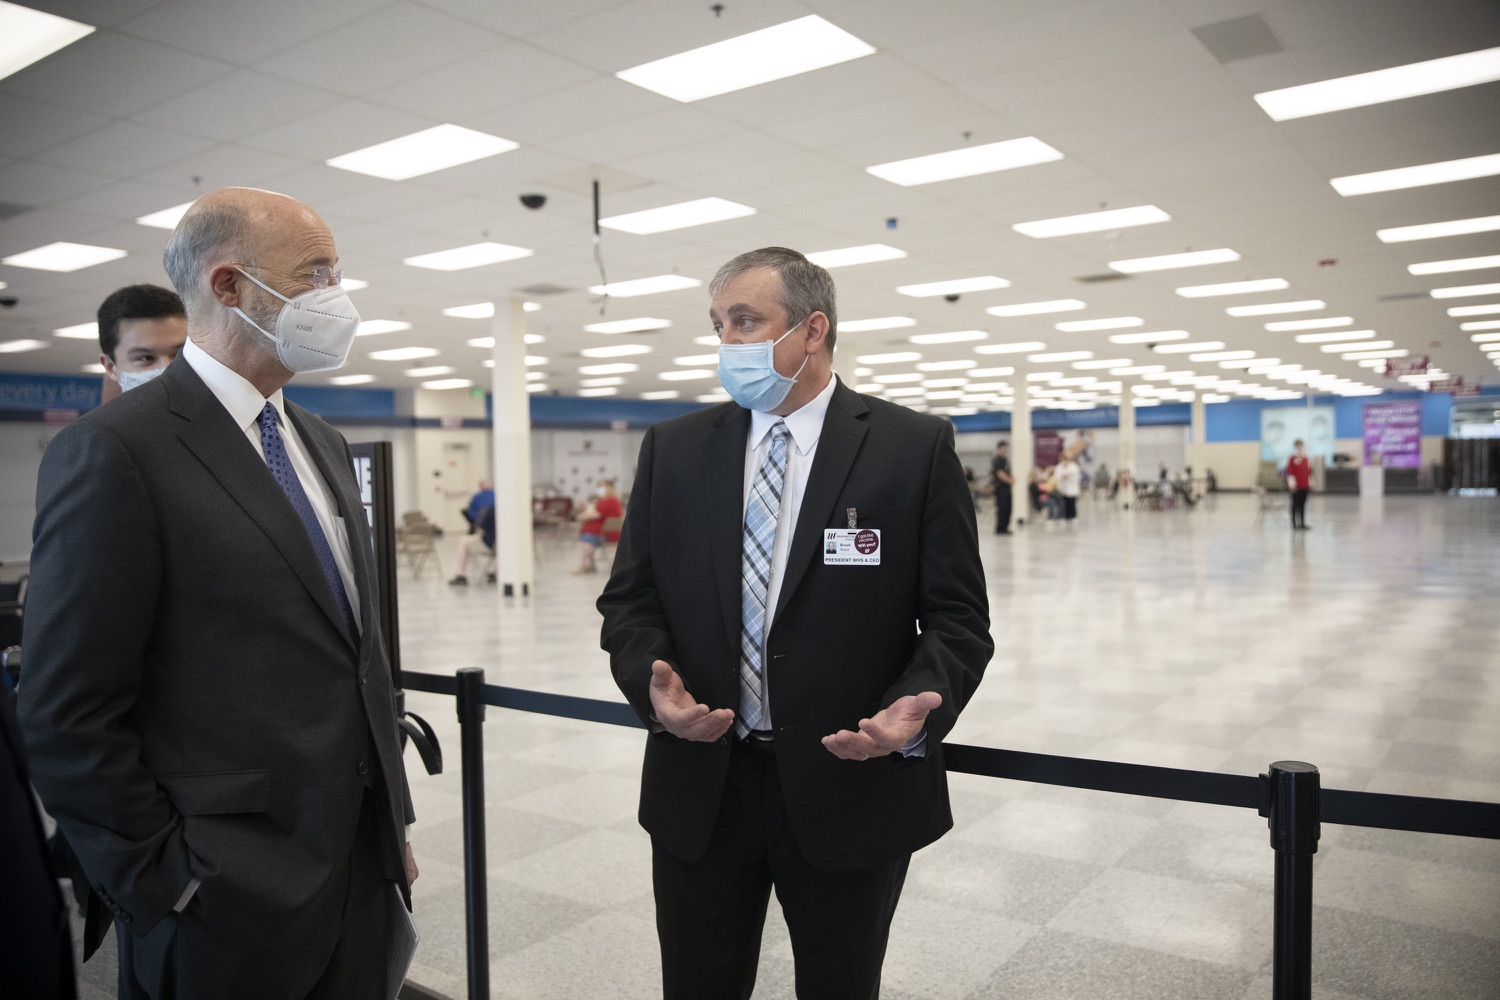 "<a href=""https://filesource.wostreaming.net/commonwealthofpa/photo/18712_gov_vaccines_dz_014.jpg"" target=""_blank"">⇣ Download Photo<br></a>Pennsylvania Governor Tom Wolf touring the vaccine facility with  Brook Ward, Washington Health System CEO . Continuing to visit COVID-19 vaccine clinics around the state, Governor Tom Wolf toured a clinic at the Washington Crown Center in Washington County today. The clinic is one of three operated by the Washington Health System (WHS) serving rural communities in southwestern Pennsylvania.  North Franklin Township, PA  April 28, 2021"